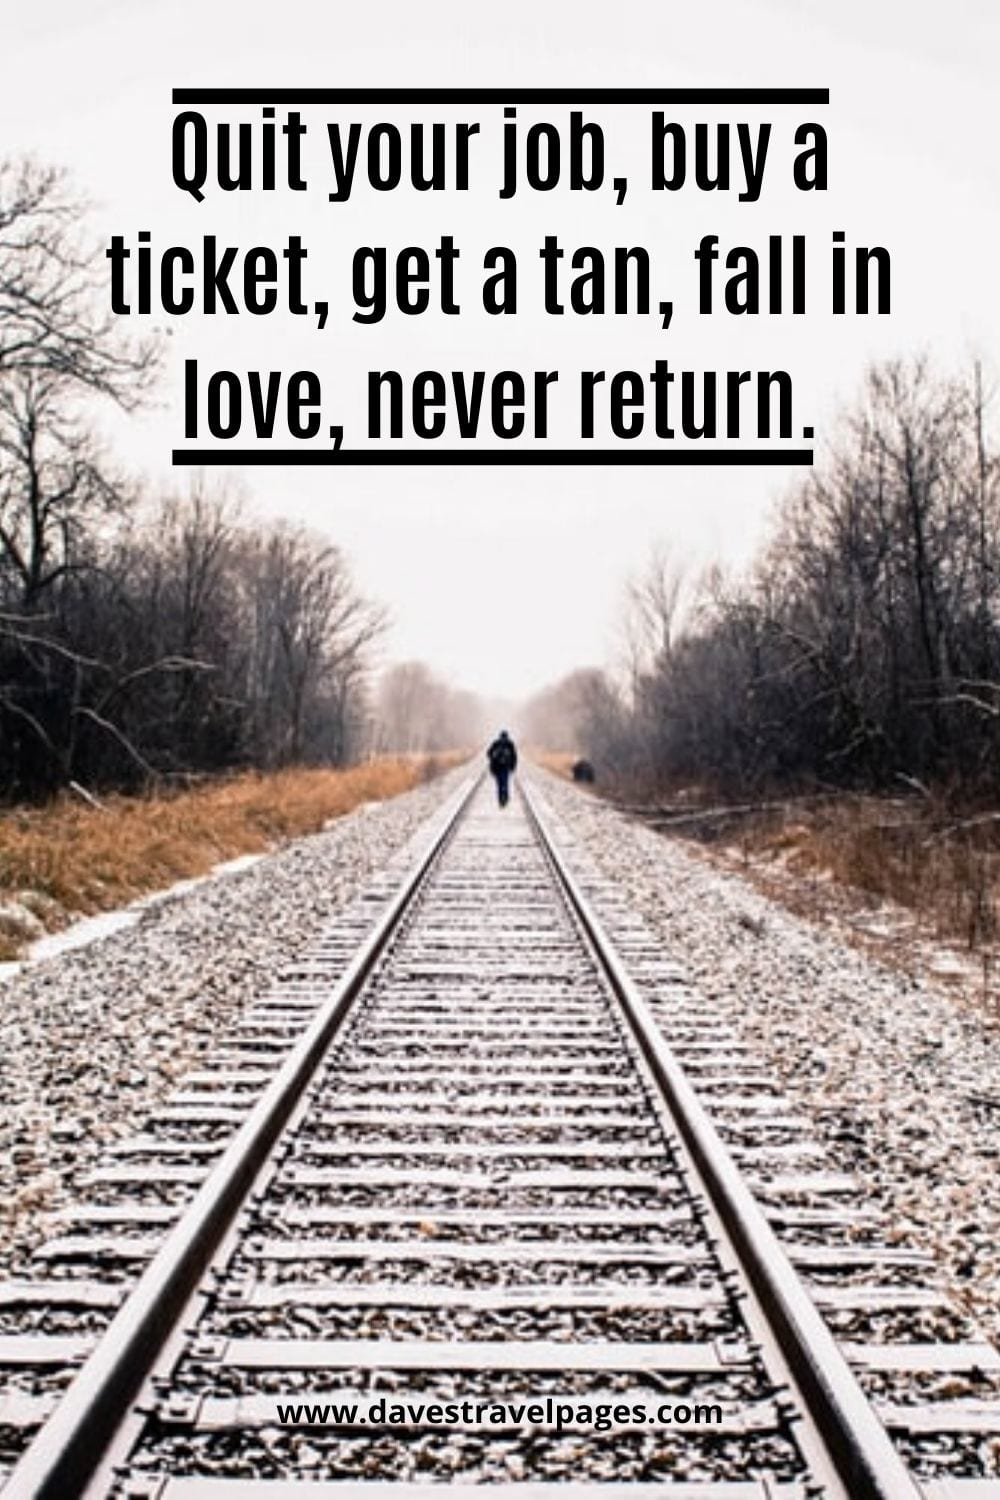 Inspiring quotes about traveling: Quit your job, buy a ticket, get a tan, fall in love, never return.